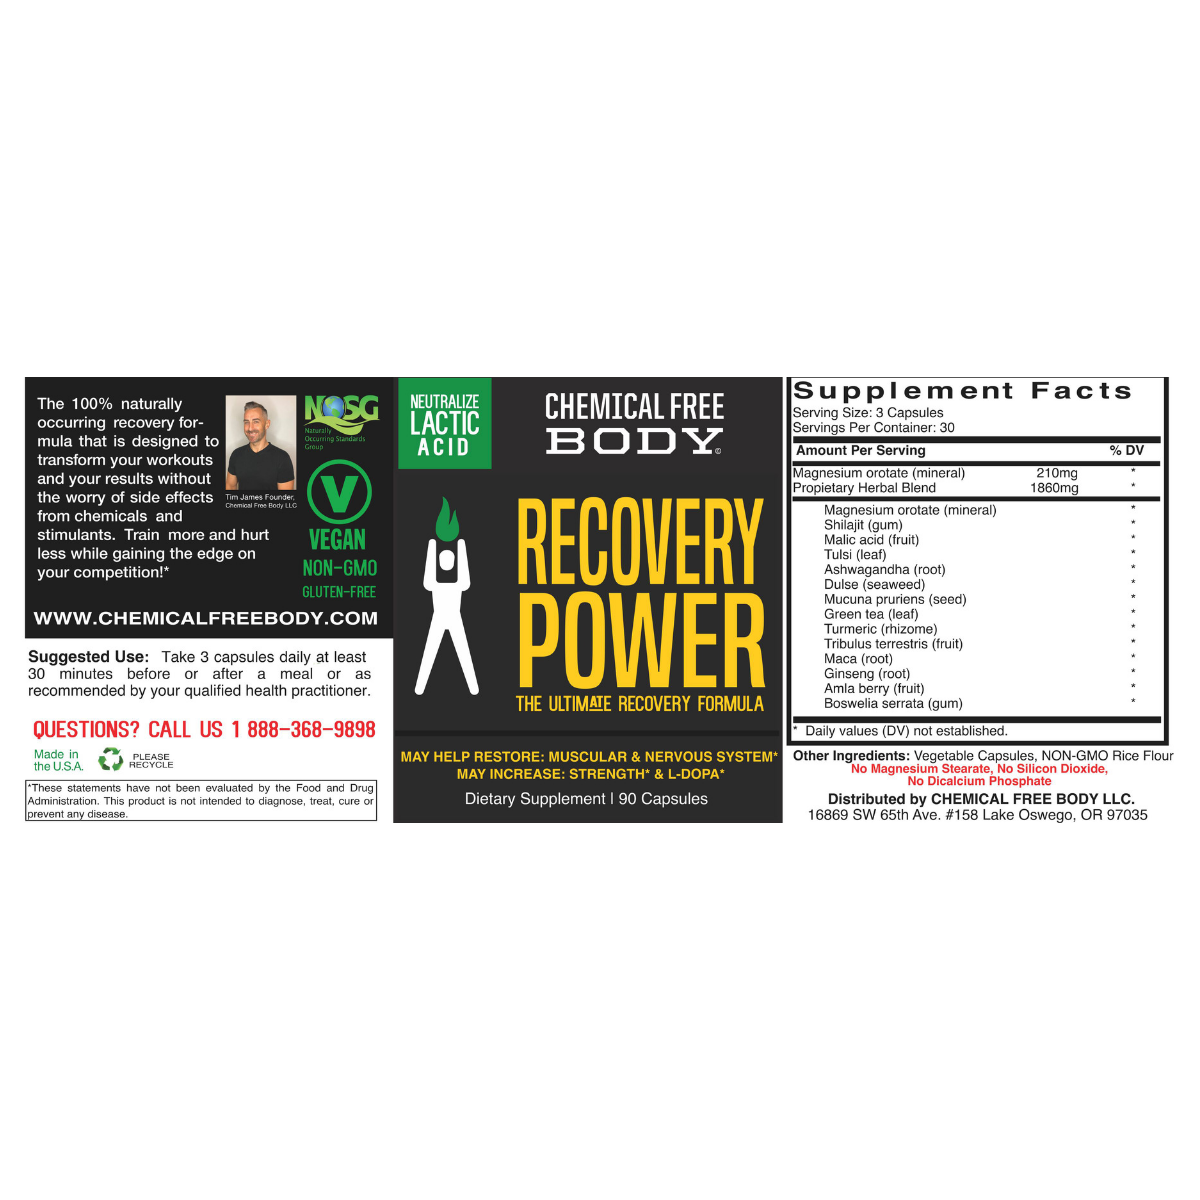 inflamation_pain_reduce_Recovery_power_Chemical_Free_Body_label